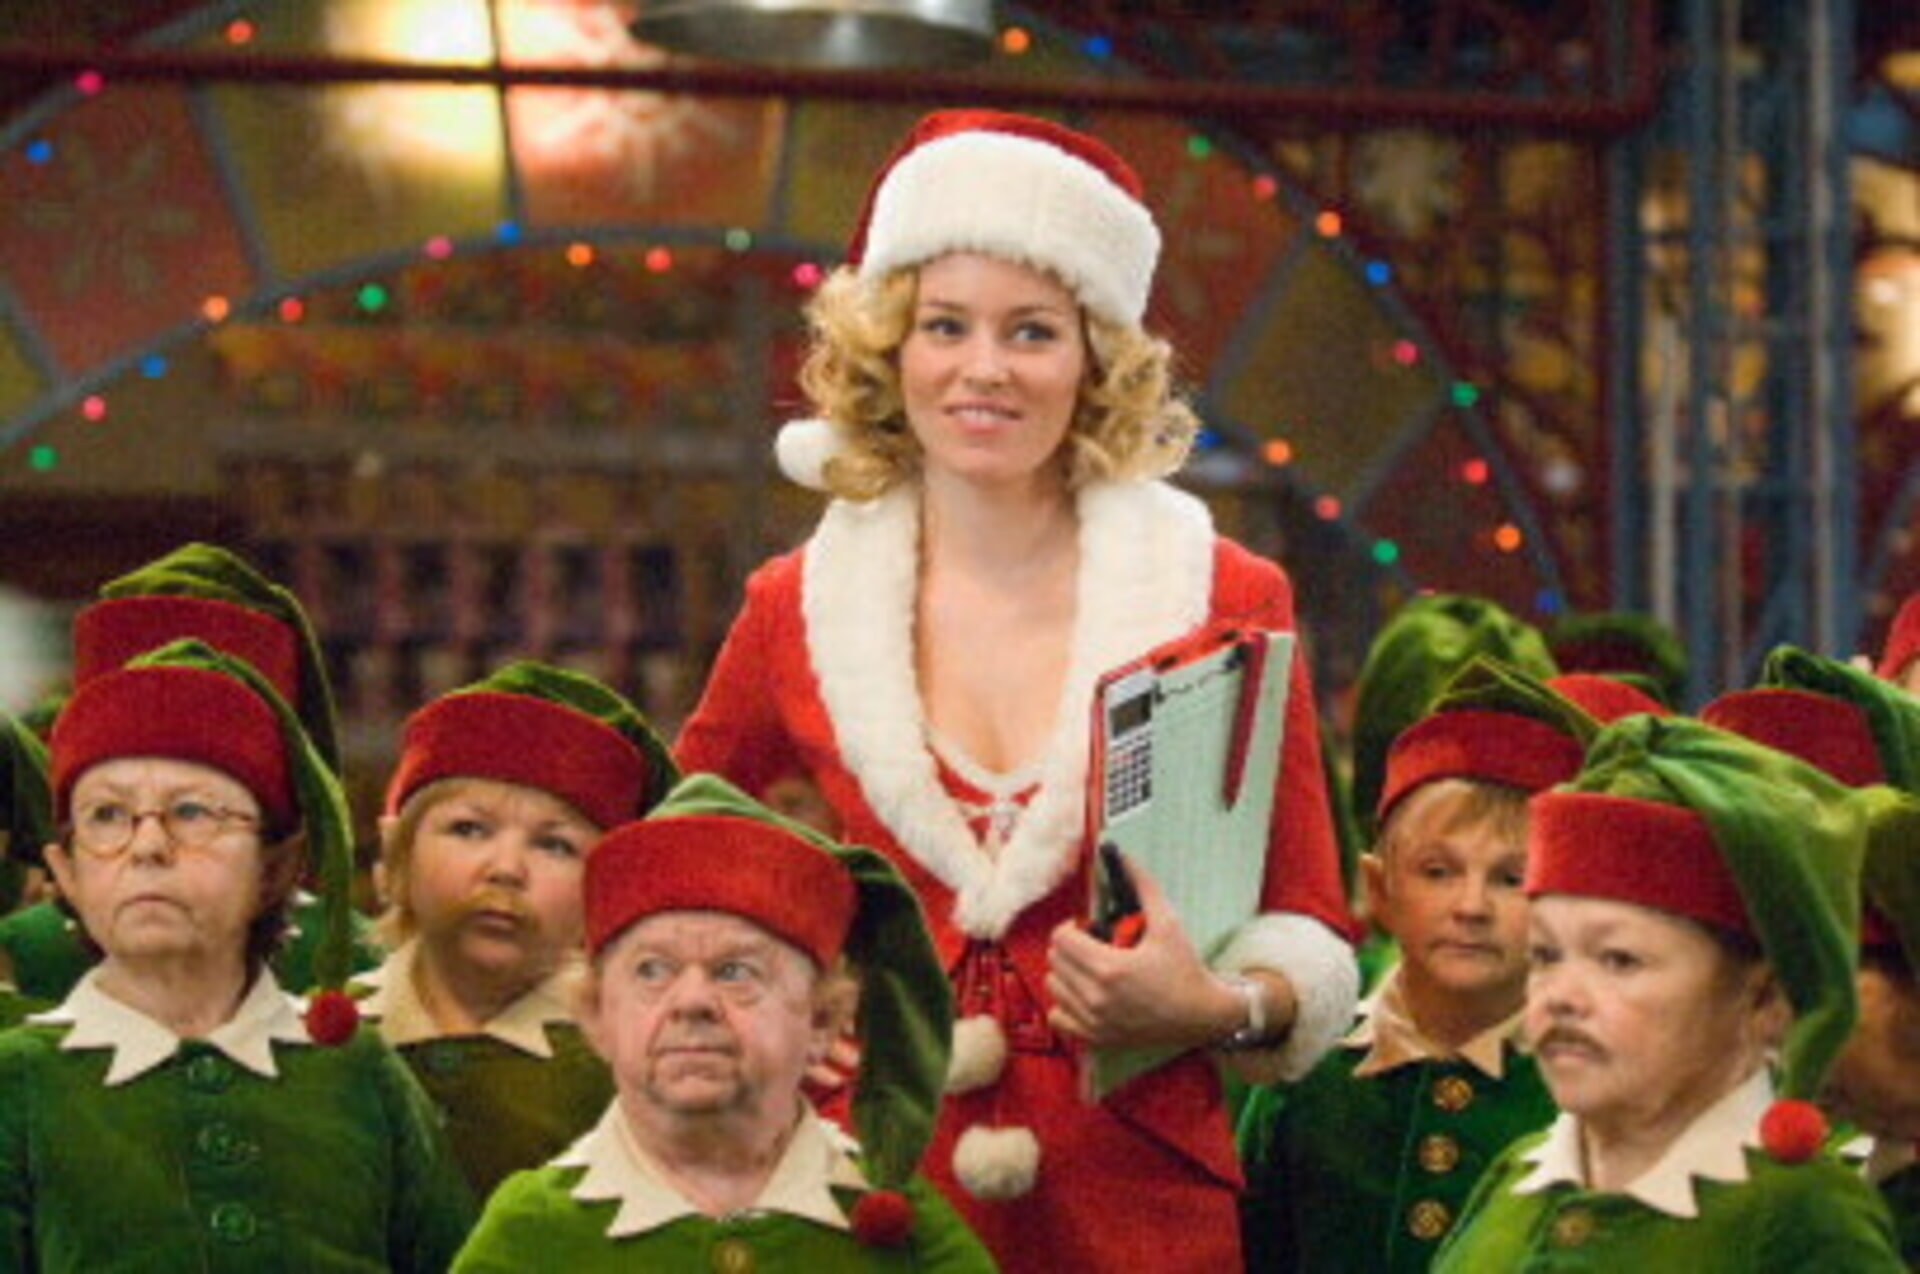 Fred Claus - Image 16